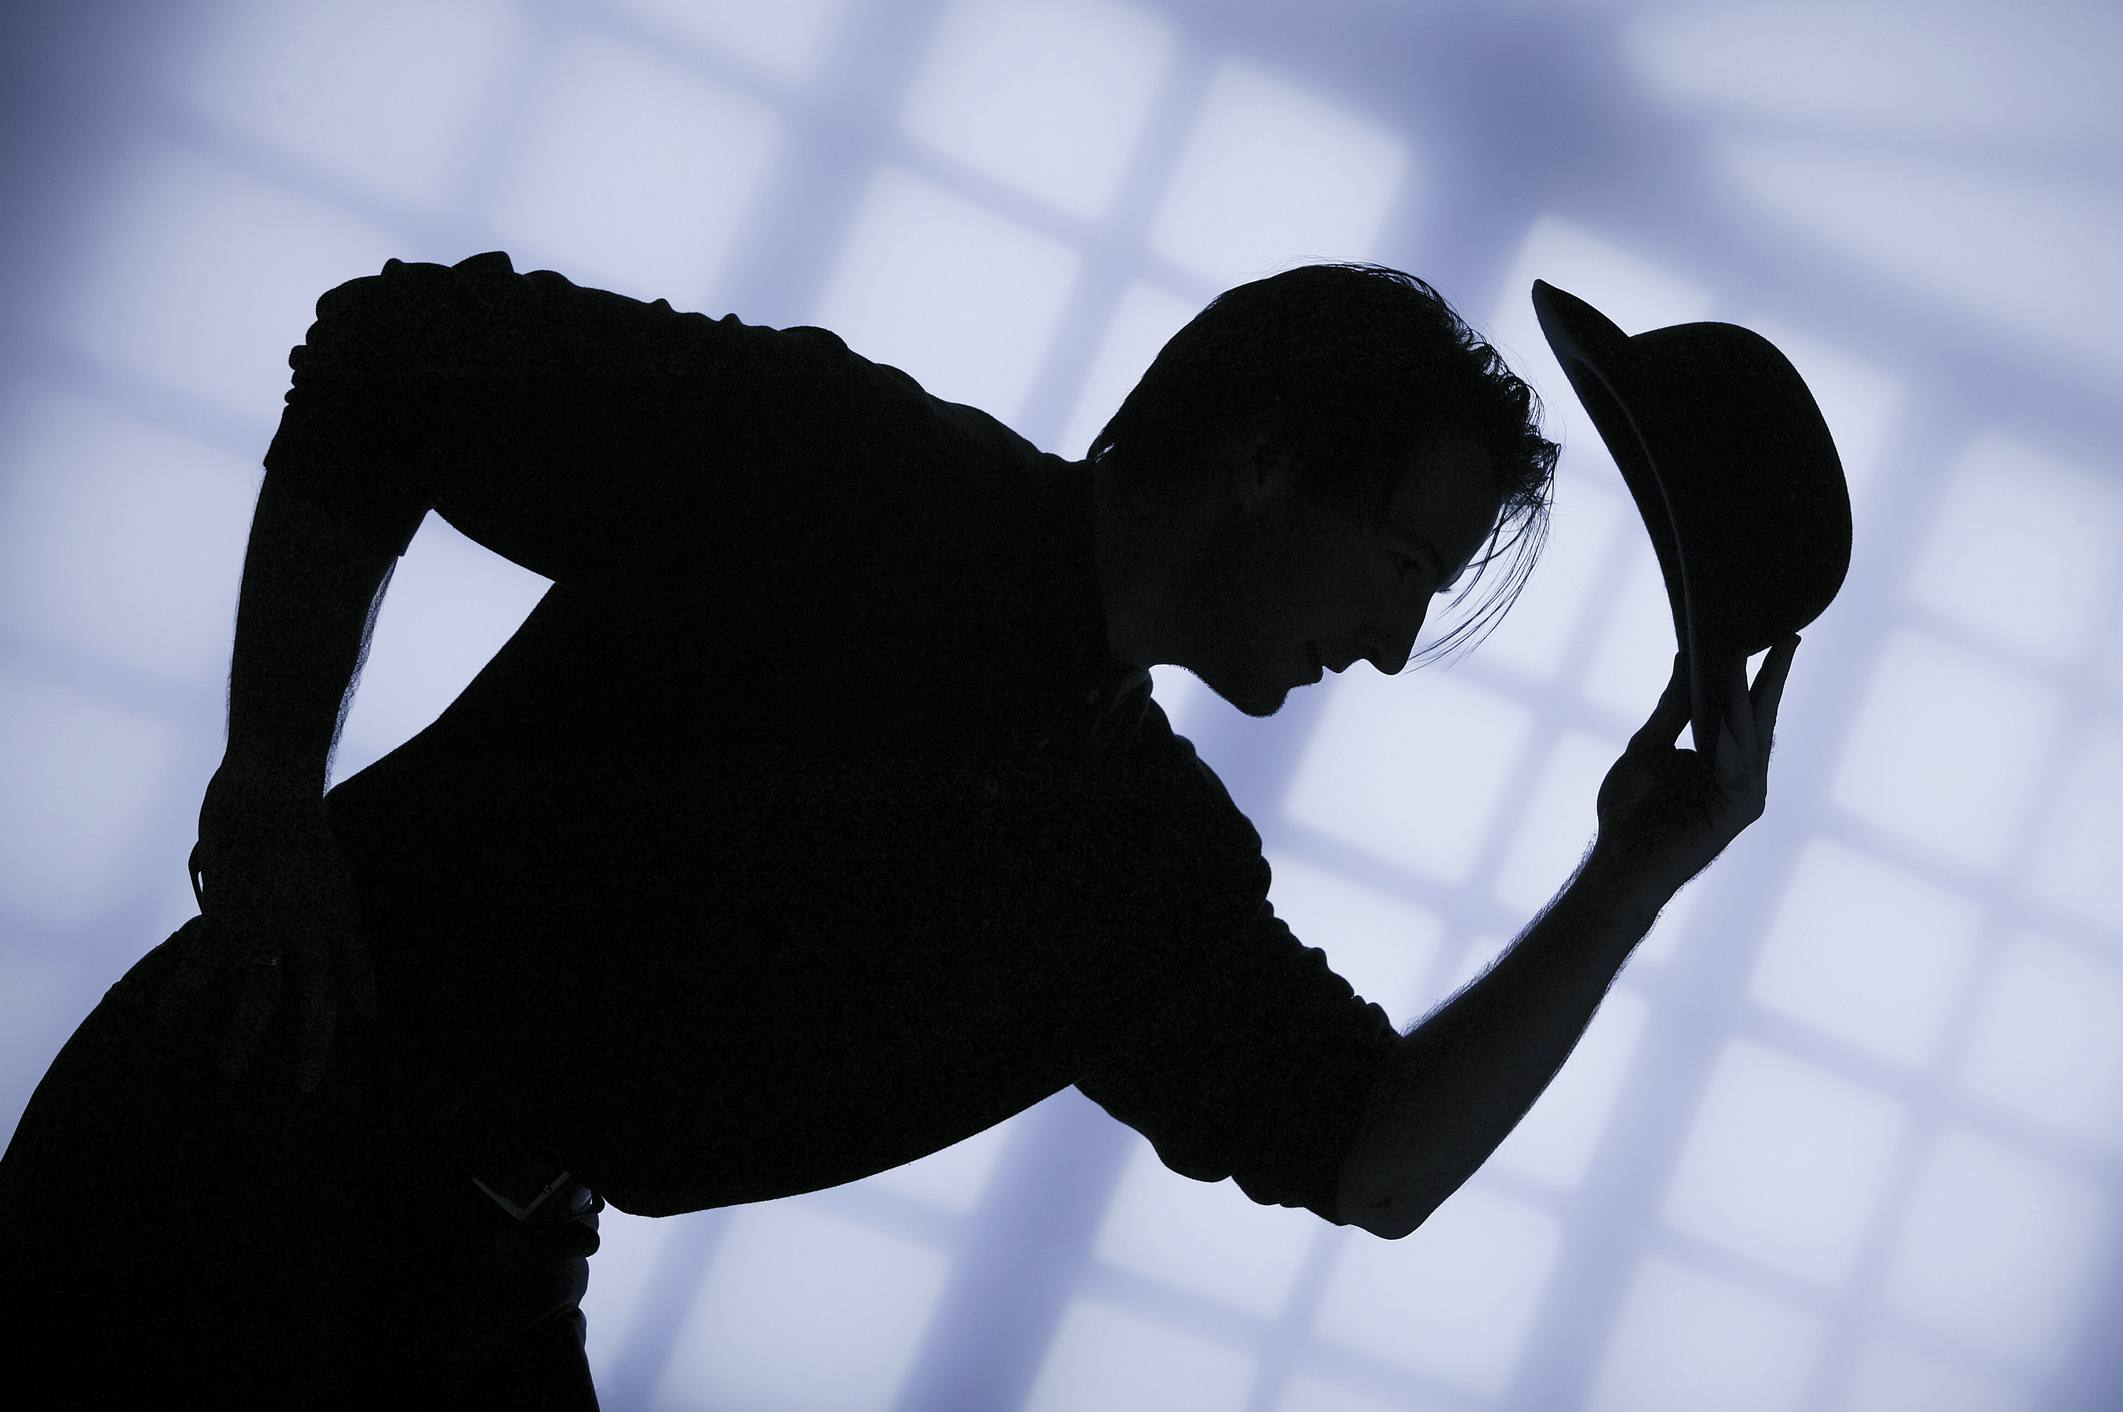 A shadow figure bowing, removing their hat